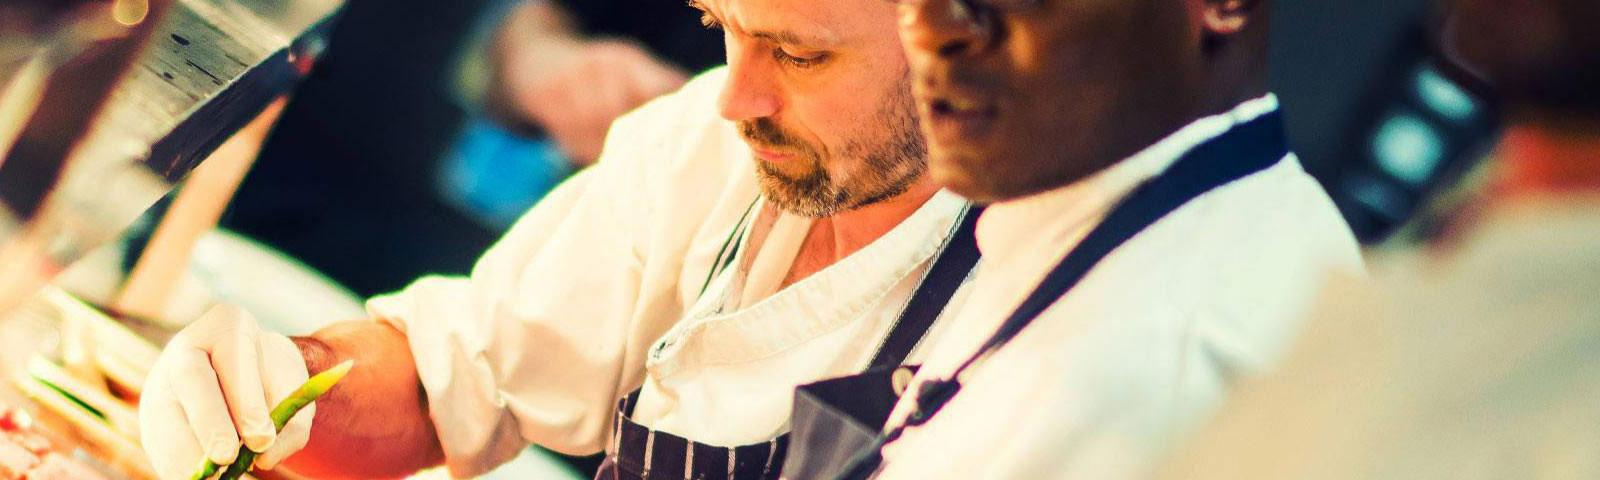 Two chefs preparing food.